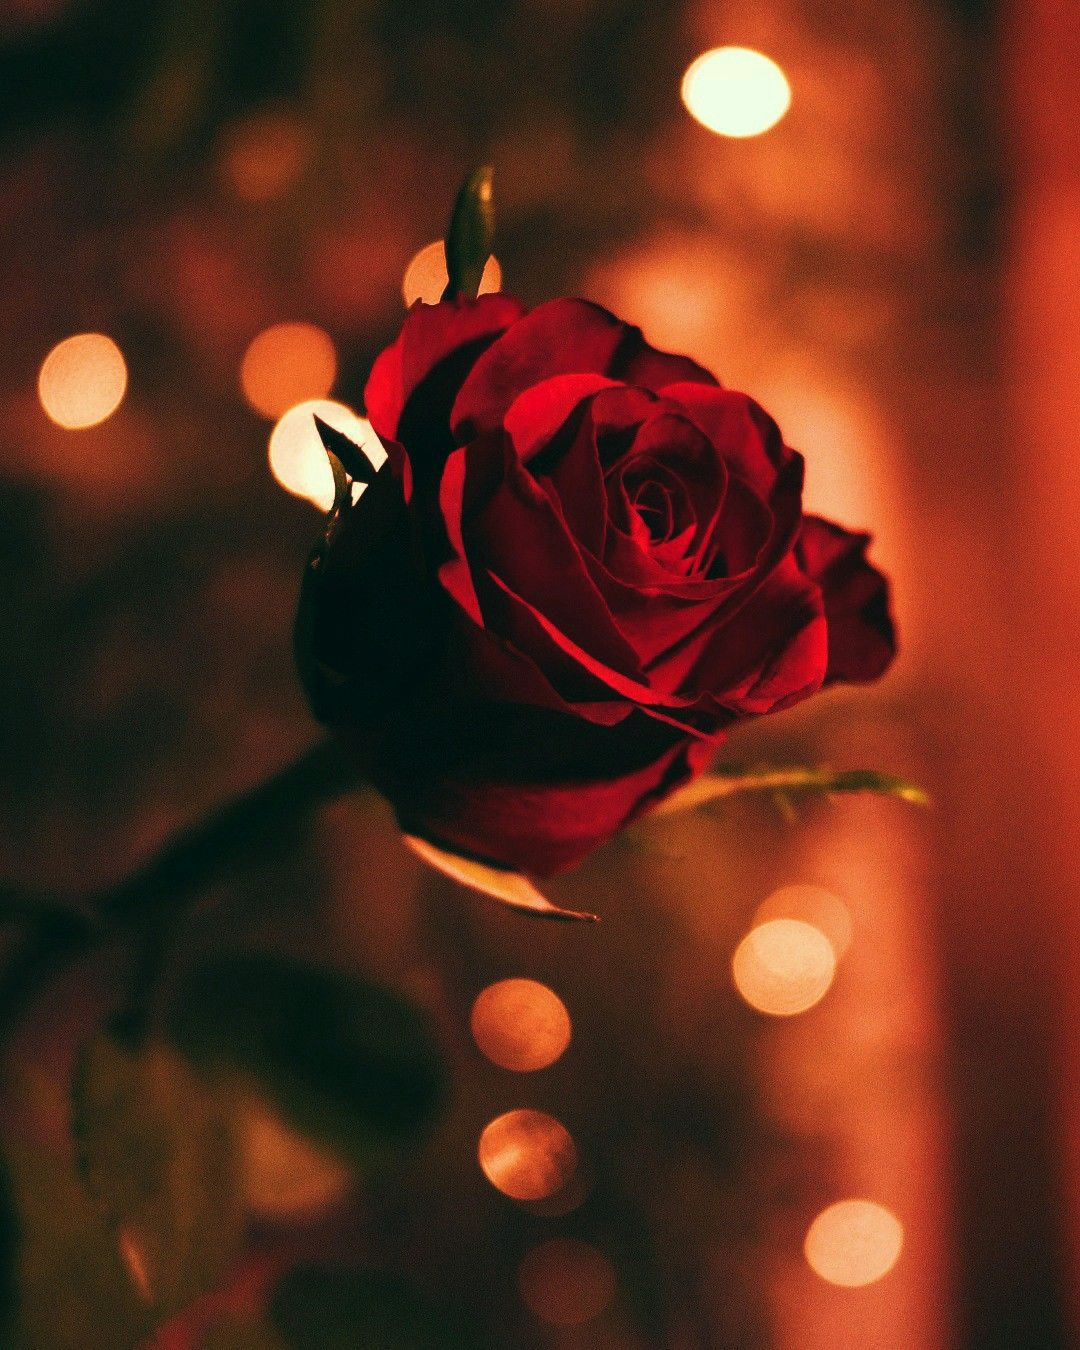 Red Roses On The Red Silk Love Moment Flowers Wallpapers Nature Wallpapers Download Beautiful Hd W Buque De Rosa Vermelha Rosas Sao Vermelhas Rosas Lindas